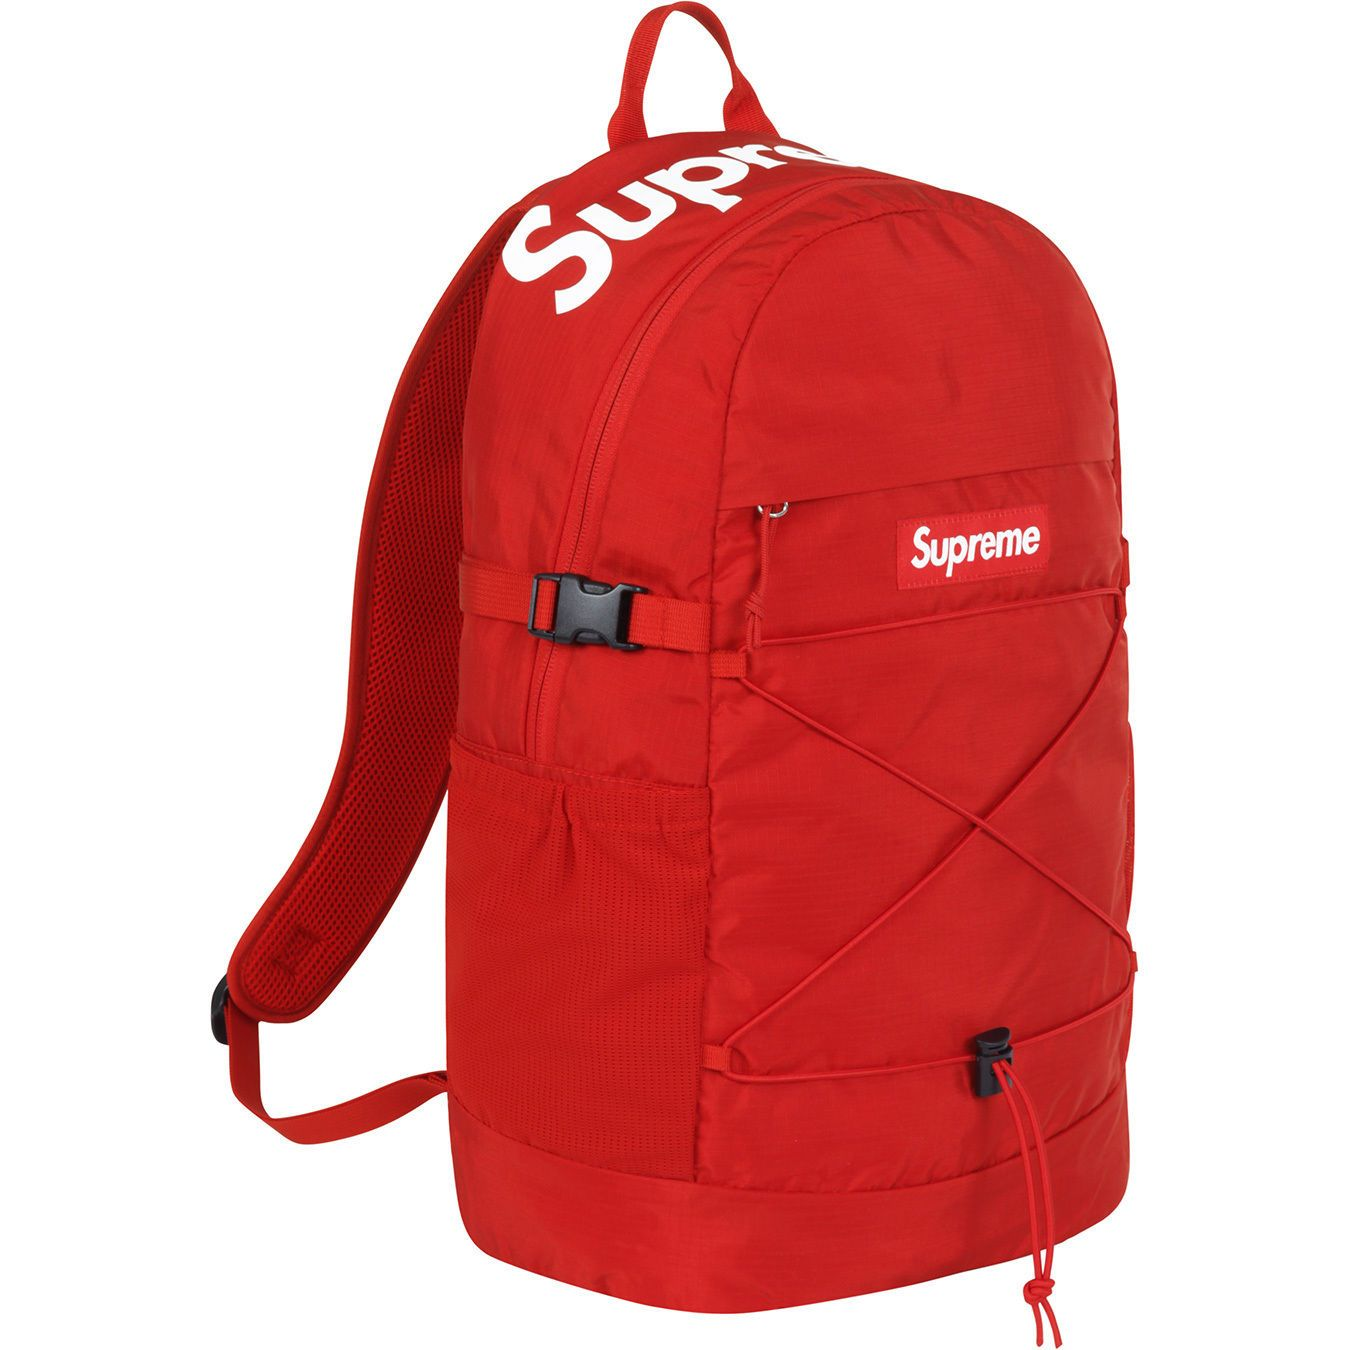 Supreme® 210 Denier Cordura® Red Backpack Ss16 W/ Supreme Sticker + Bag | Backpack Design ...